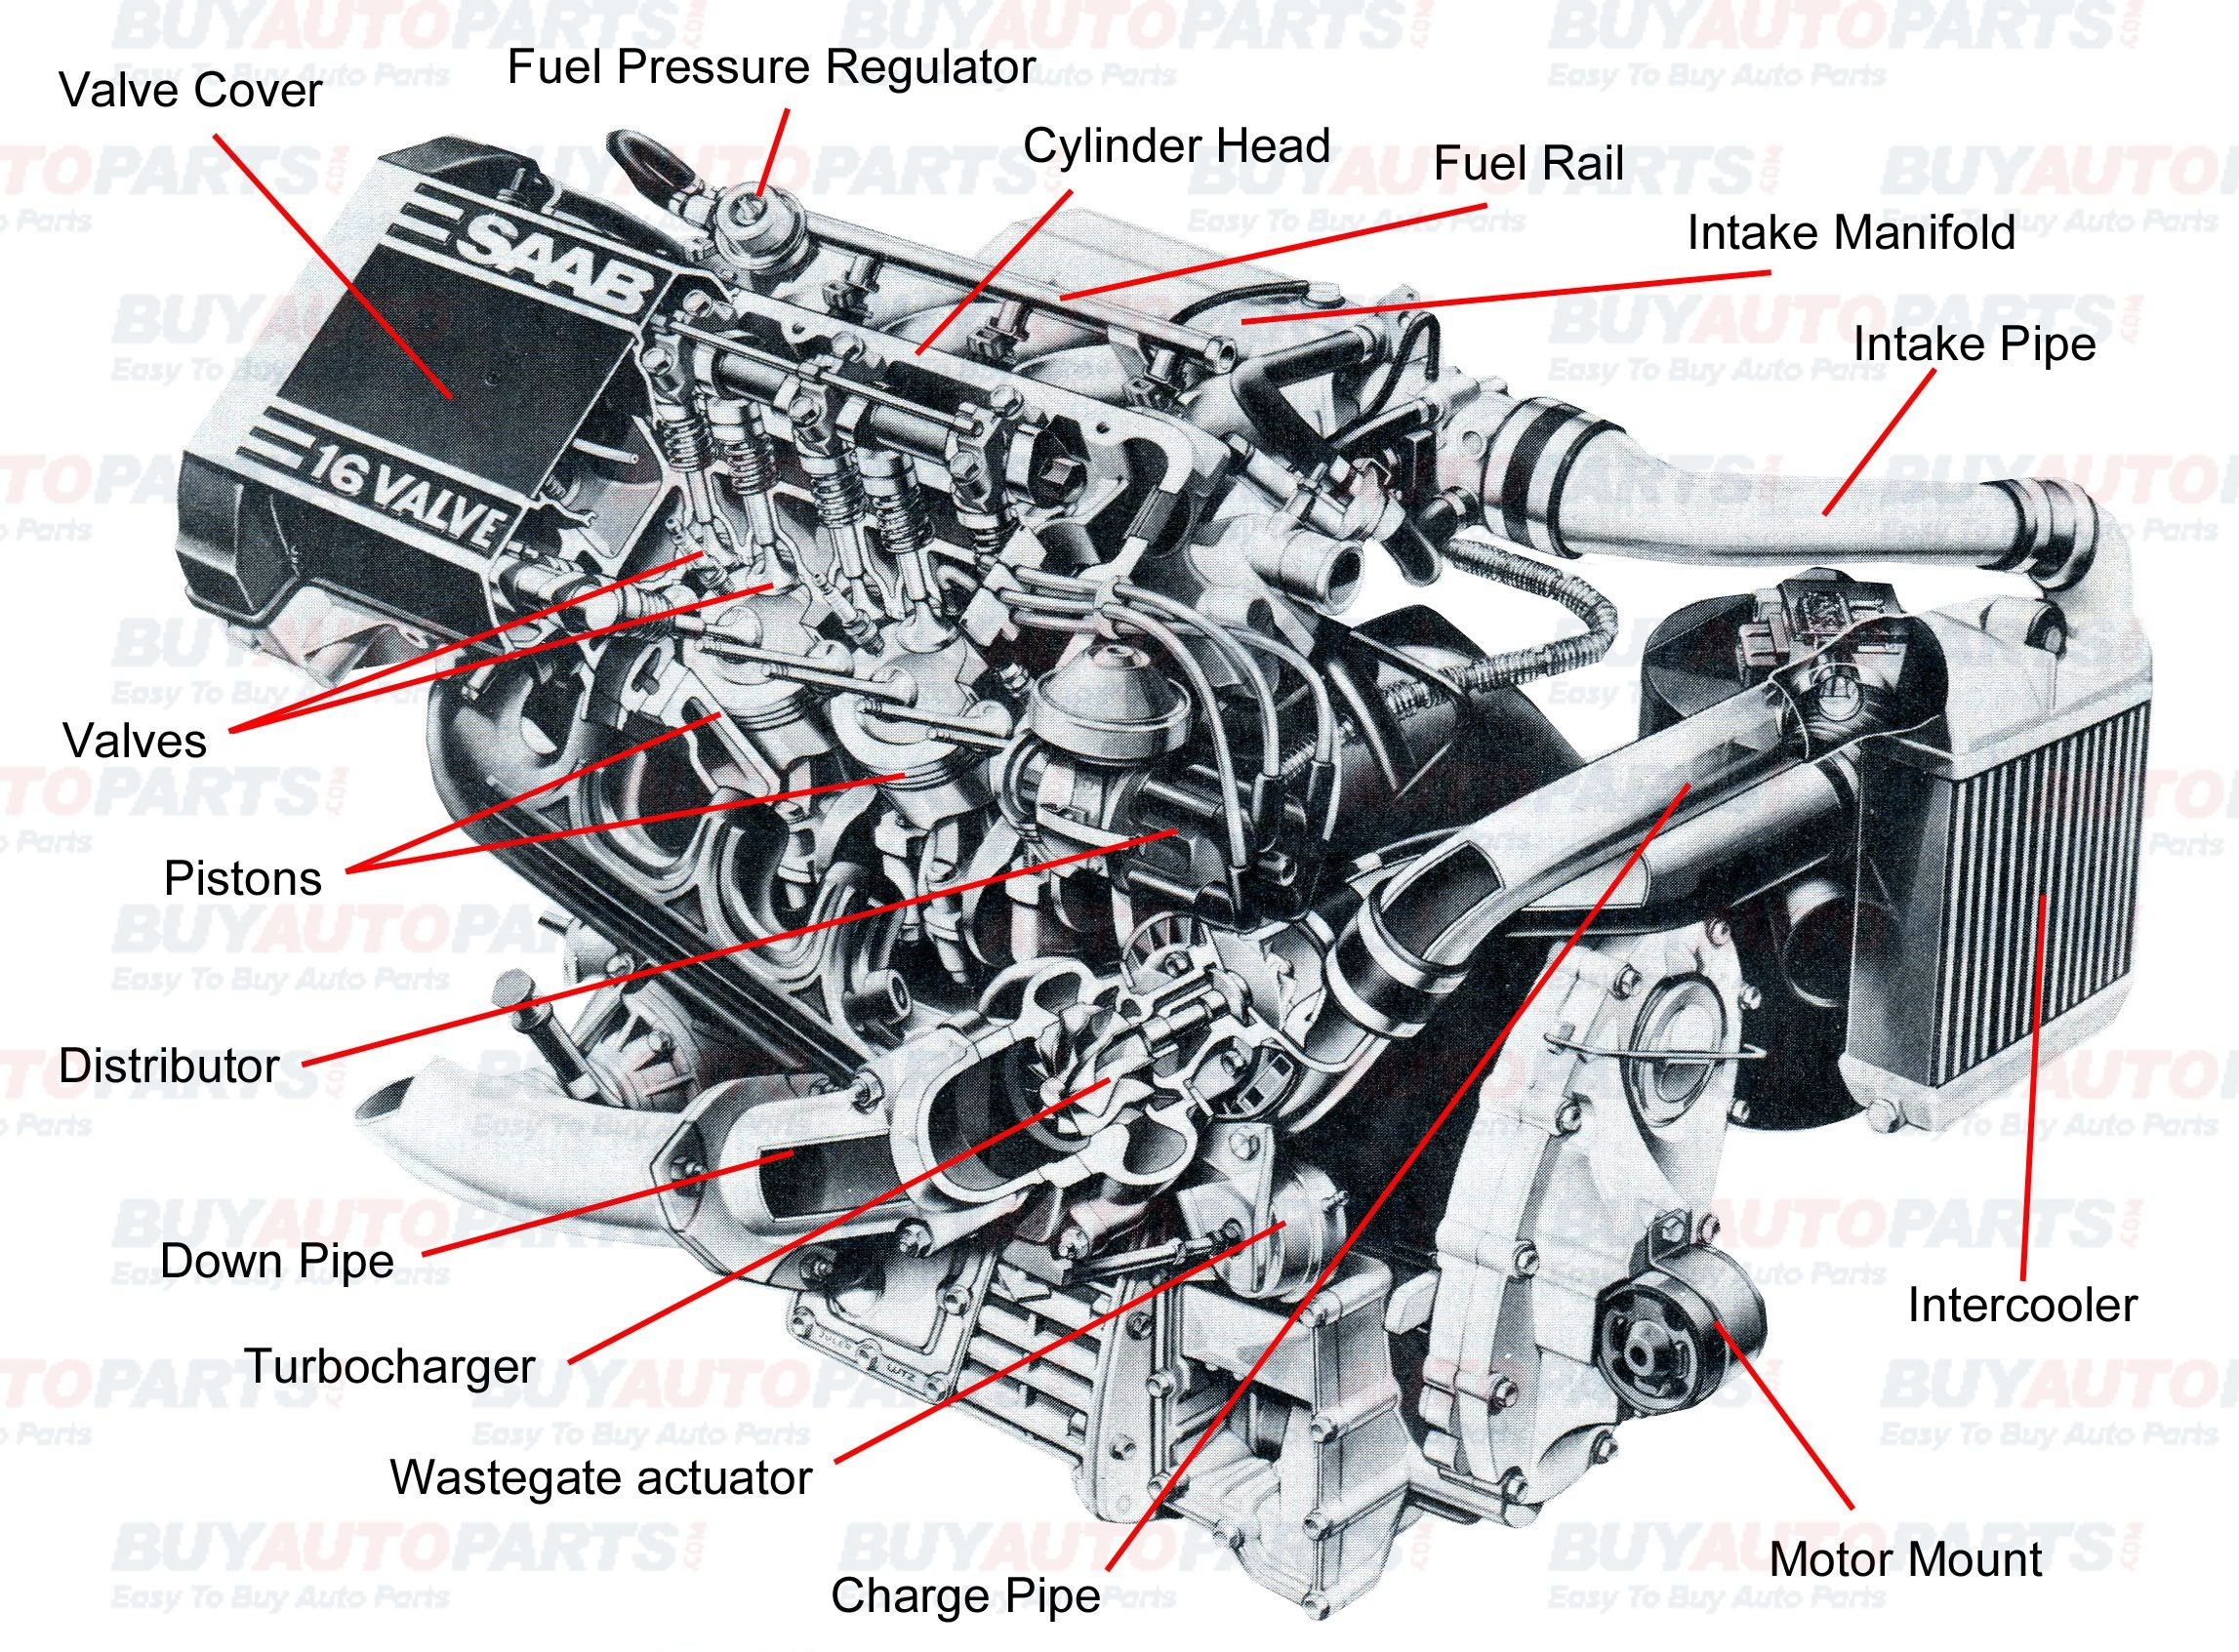 Turbocharged Engine Diagram All Internal Bustion Engines Have the Same Basic Ponents the Of Turbocharged Engine Diagram